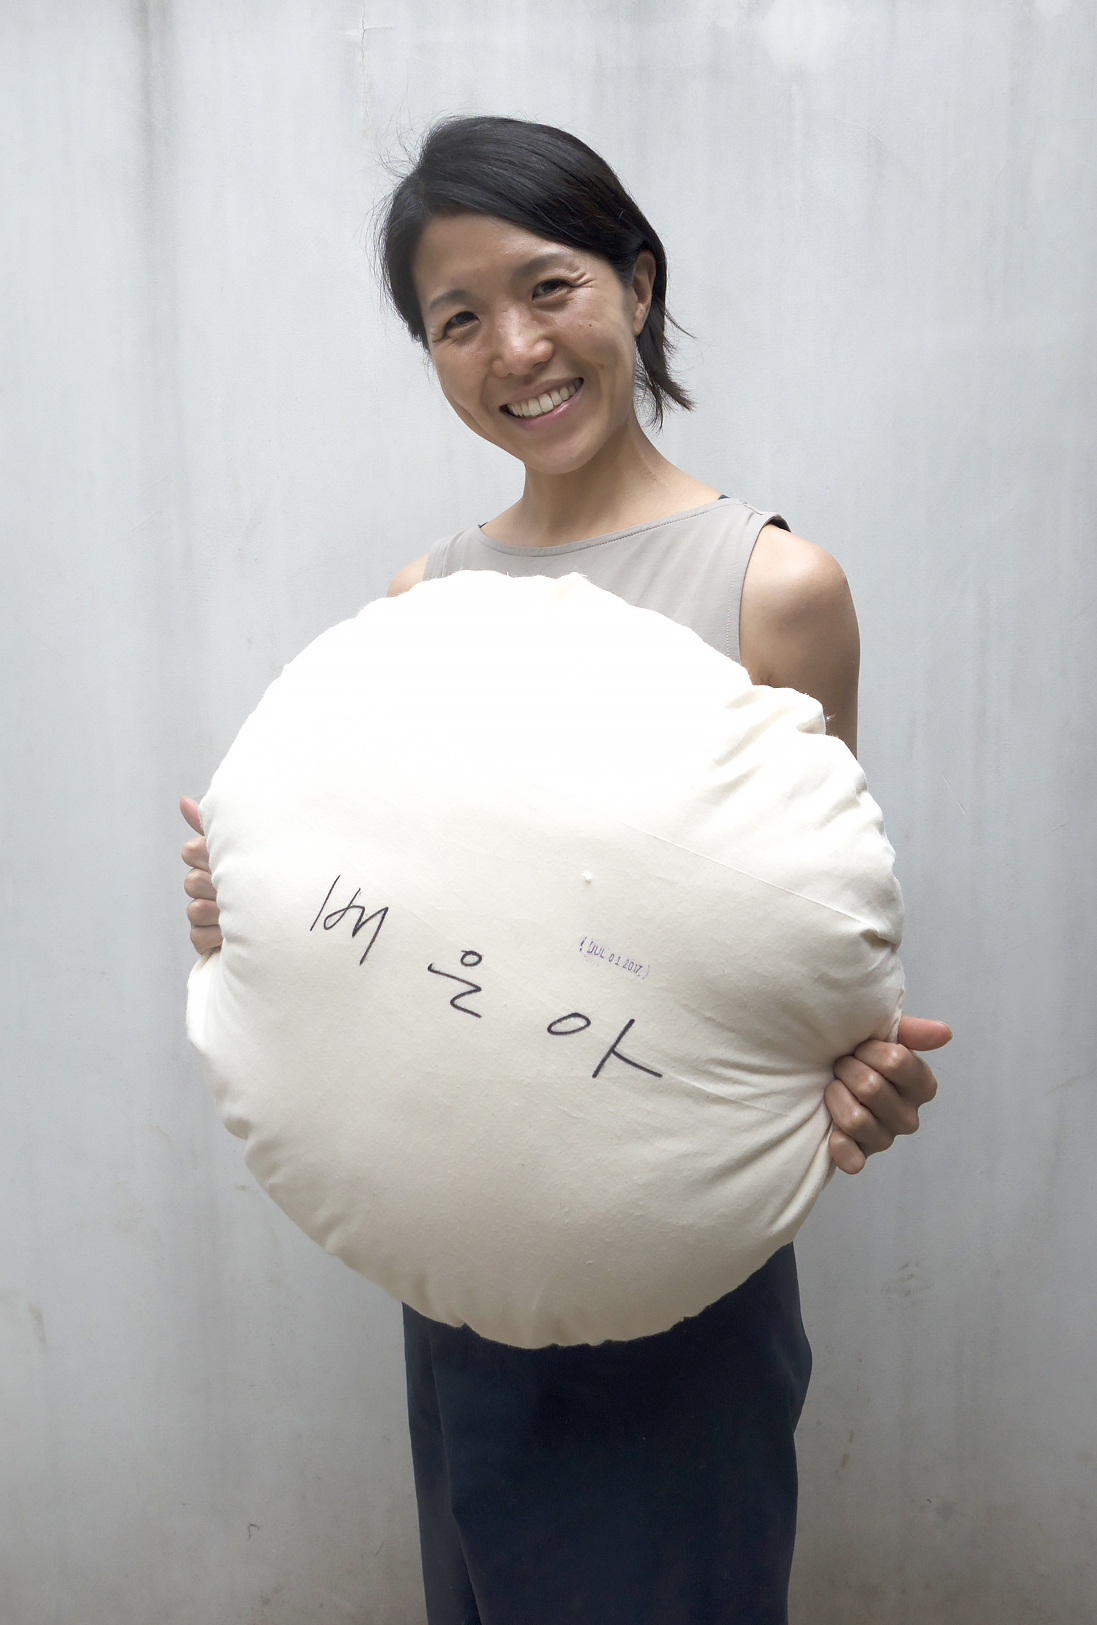 034_dosa_three_stone_pillow_workshop_GF_dosa.jpg